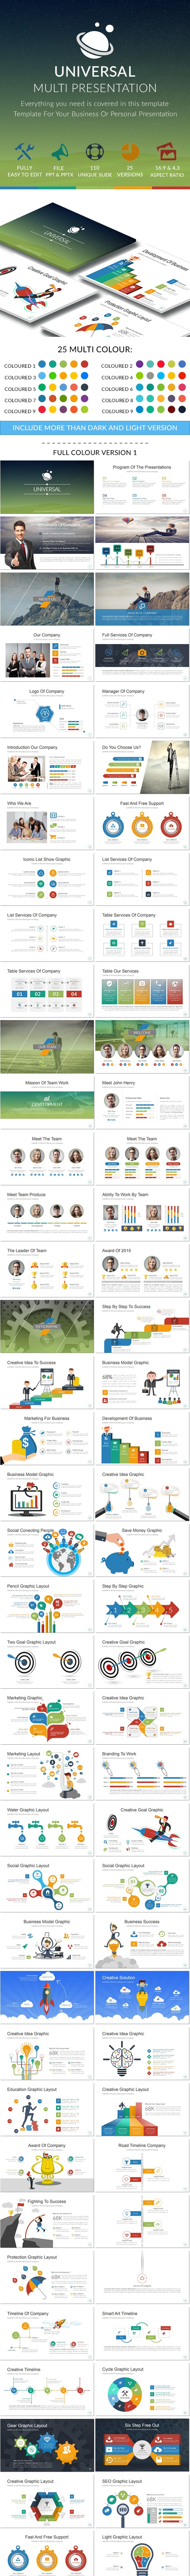 Universal Powerpoint Presentation Template - Business PowerPoint Templates